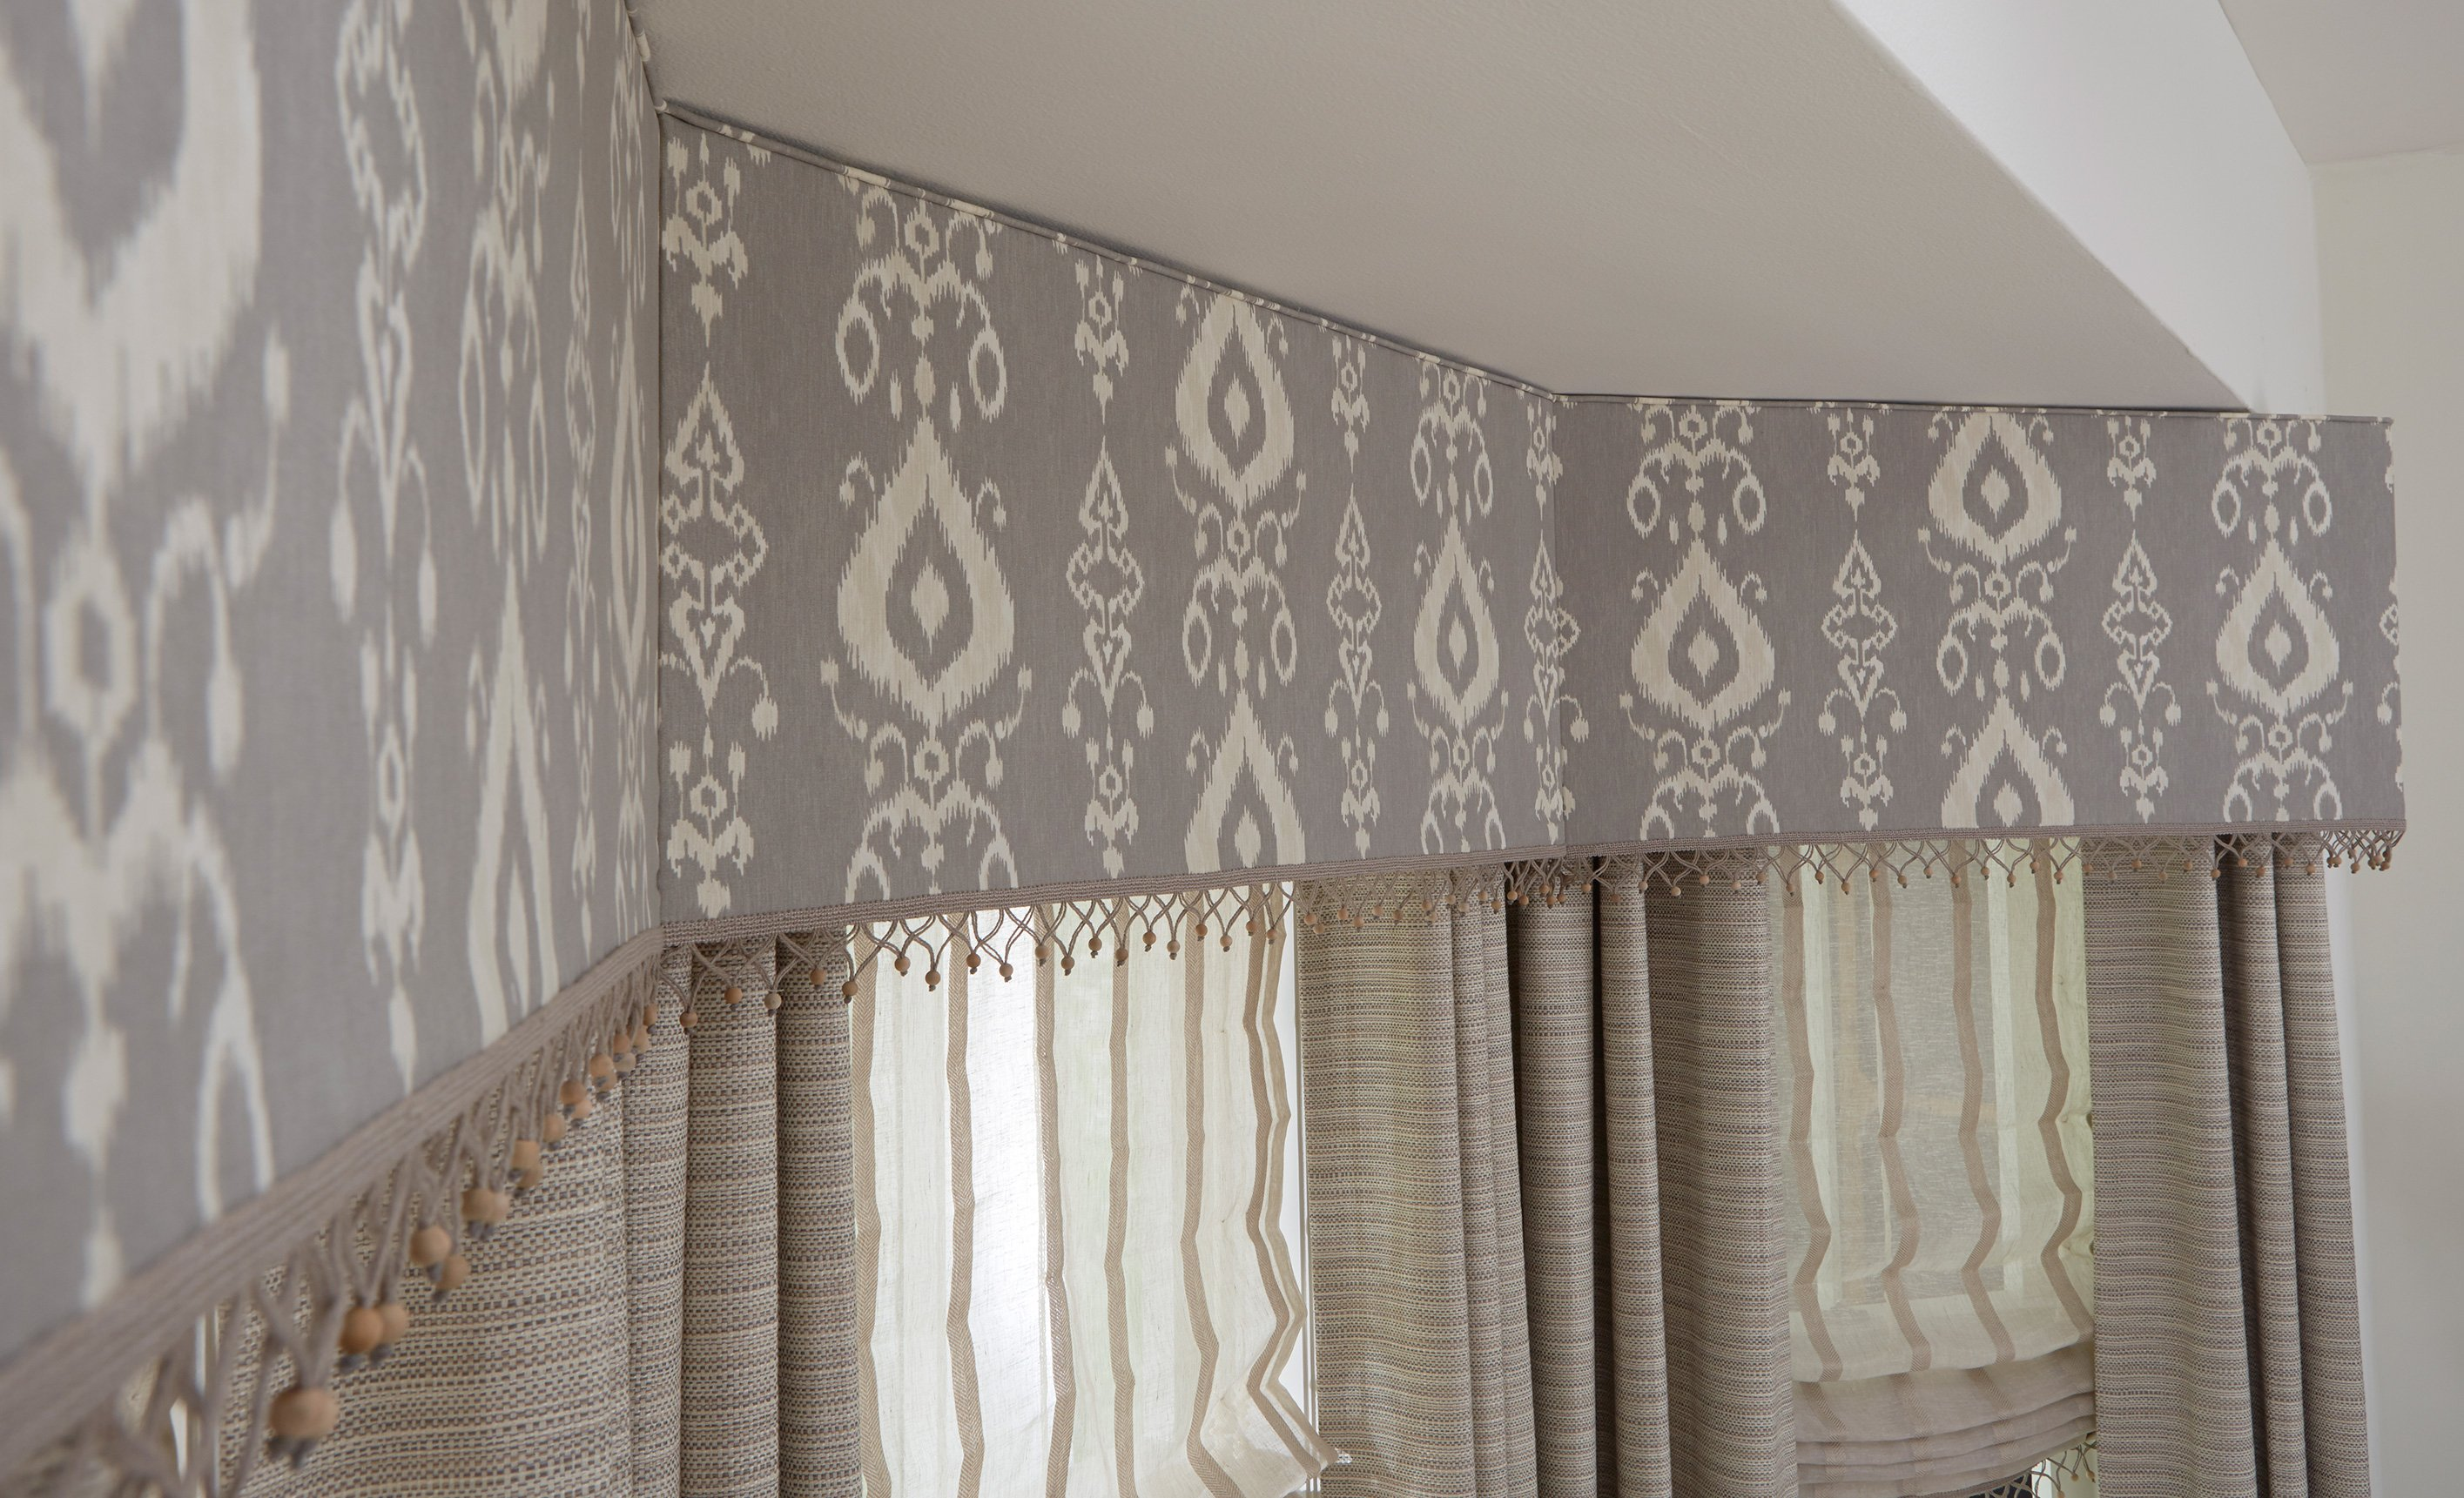 omaha try ambiance for redecorating in blinds window kitchen treatments reveal custom spring